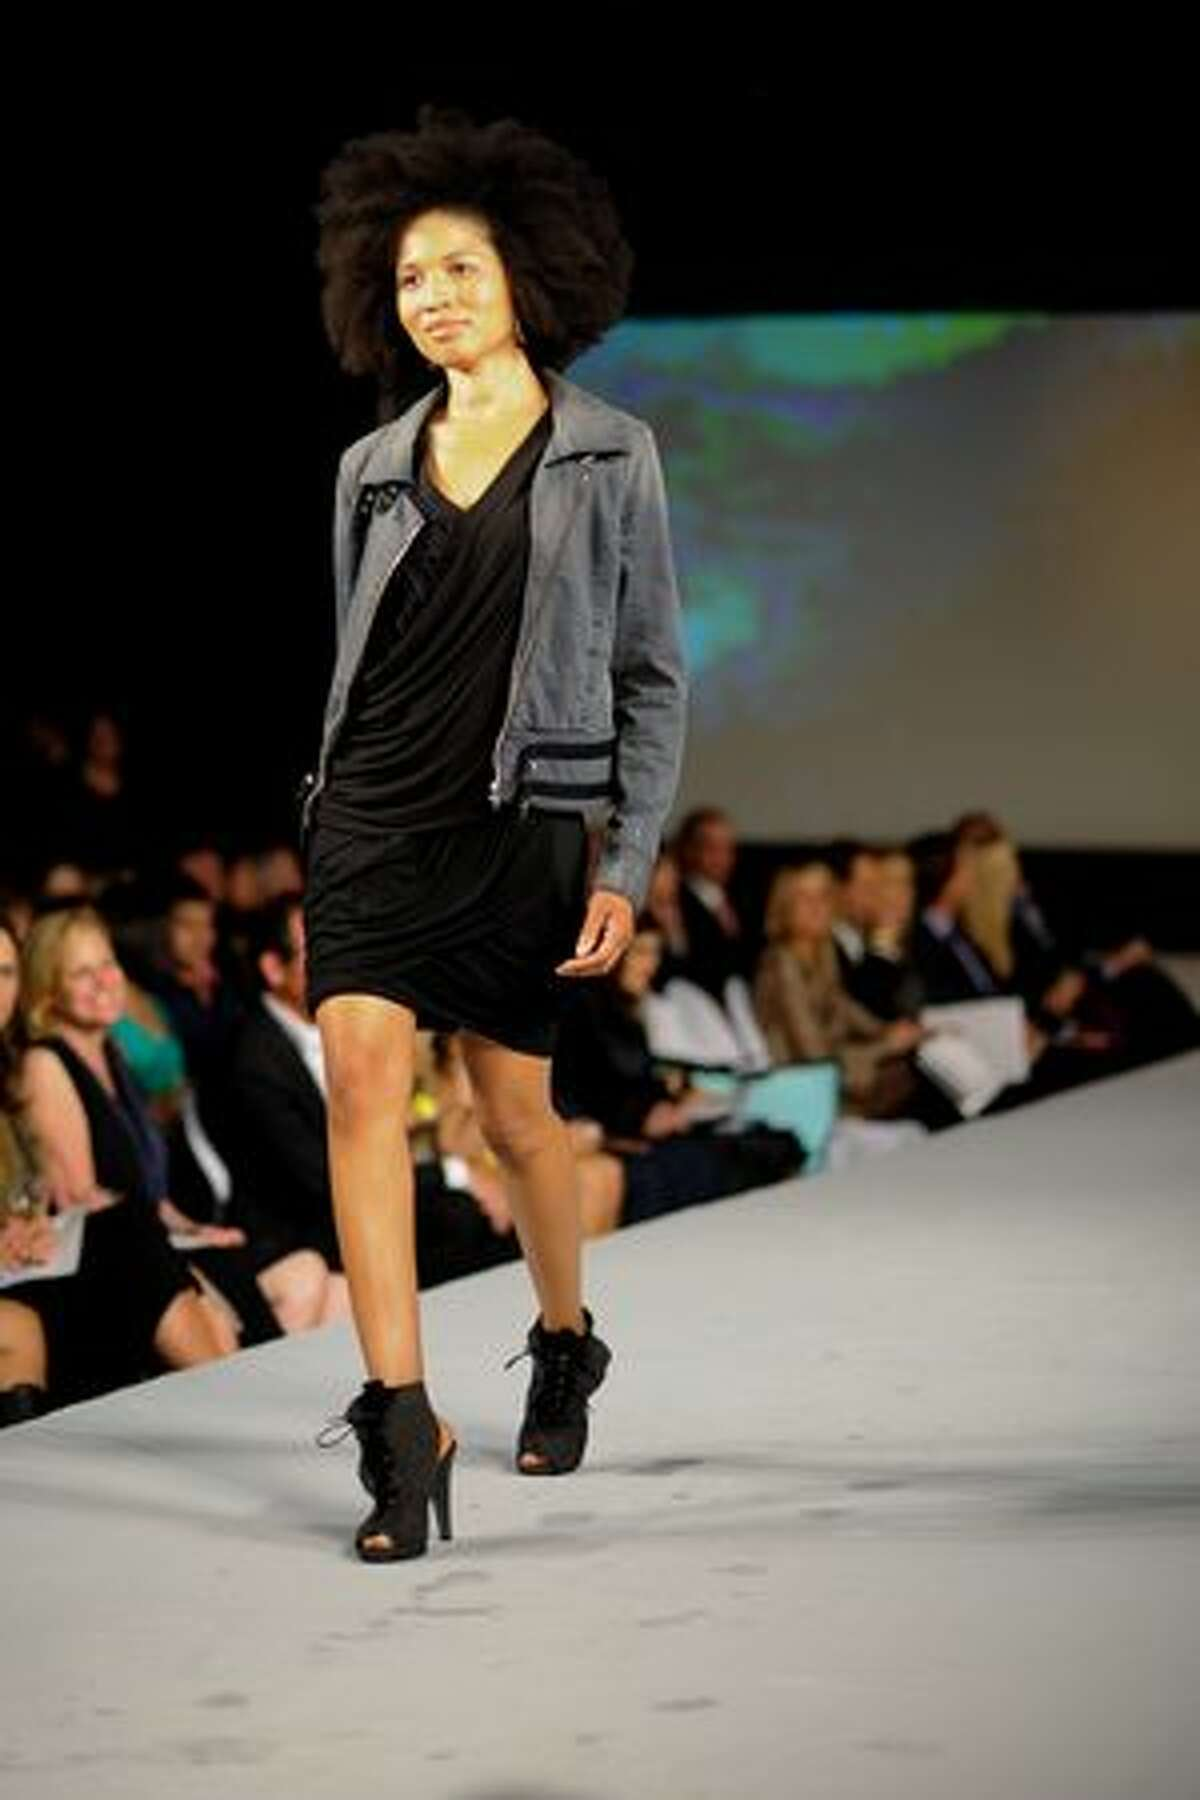 Models walk the runway showing off the latest styles from La Ree Boutique.